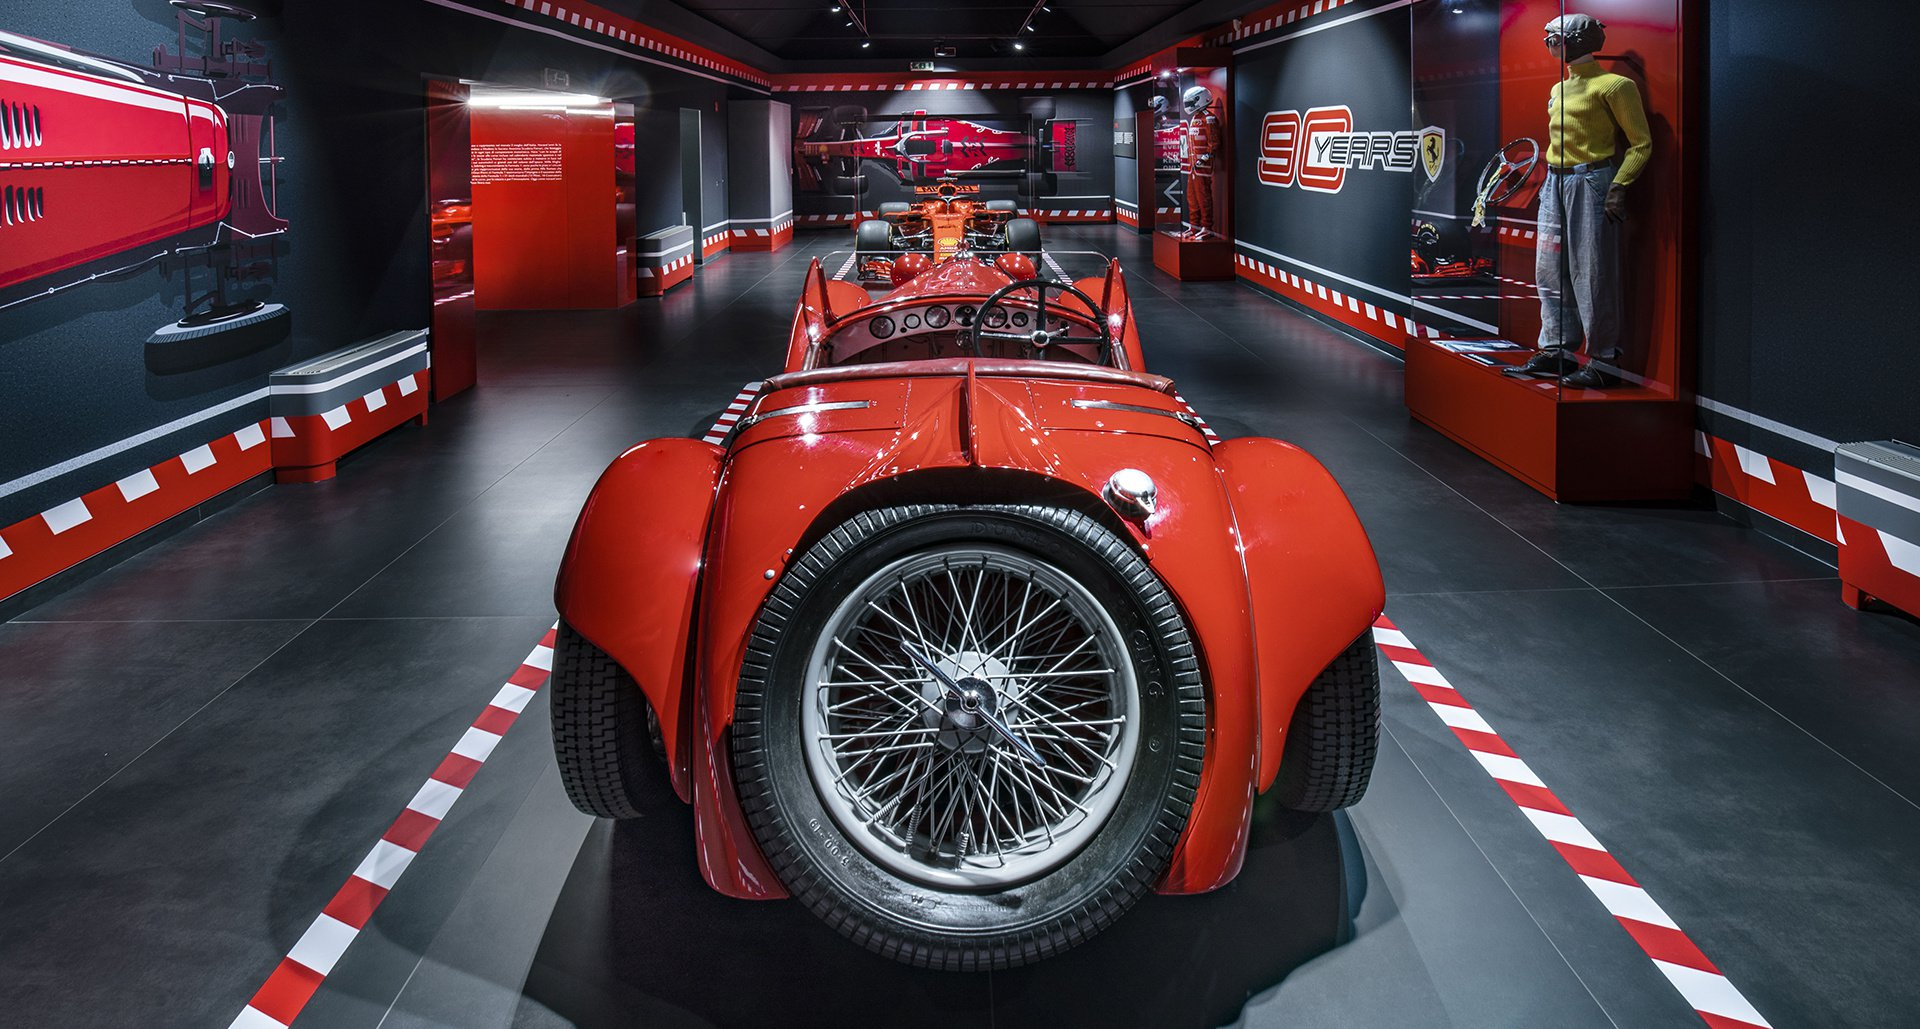 Ferrari-90-Years-Of-Racing-Special-Exhibition-9